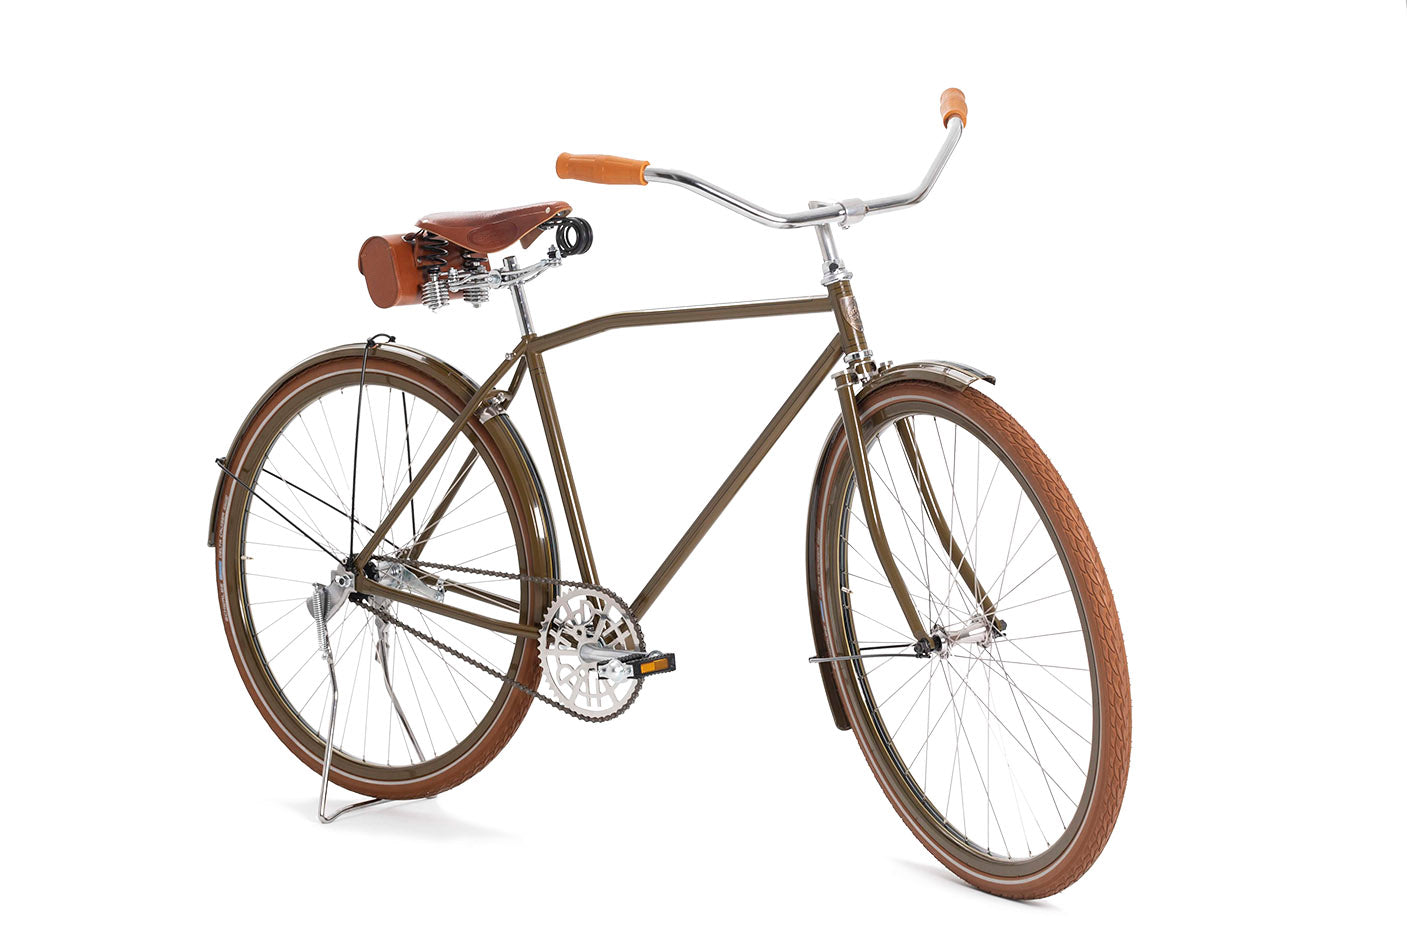 Harley Davidson 1917 Replica by Heritage Bicycles